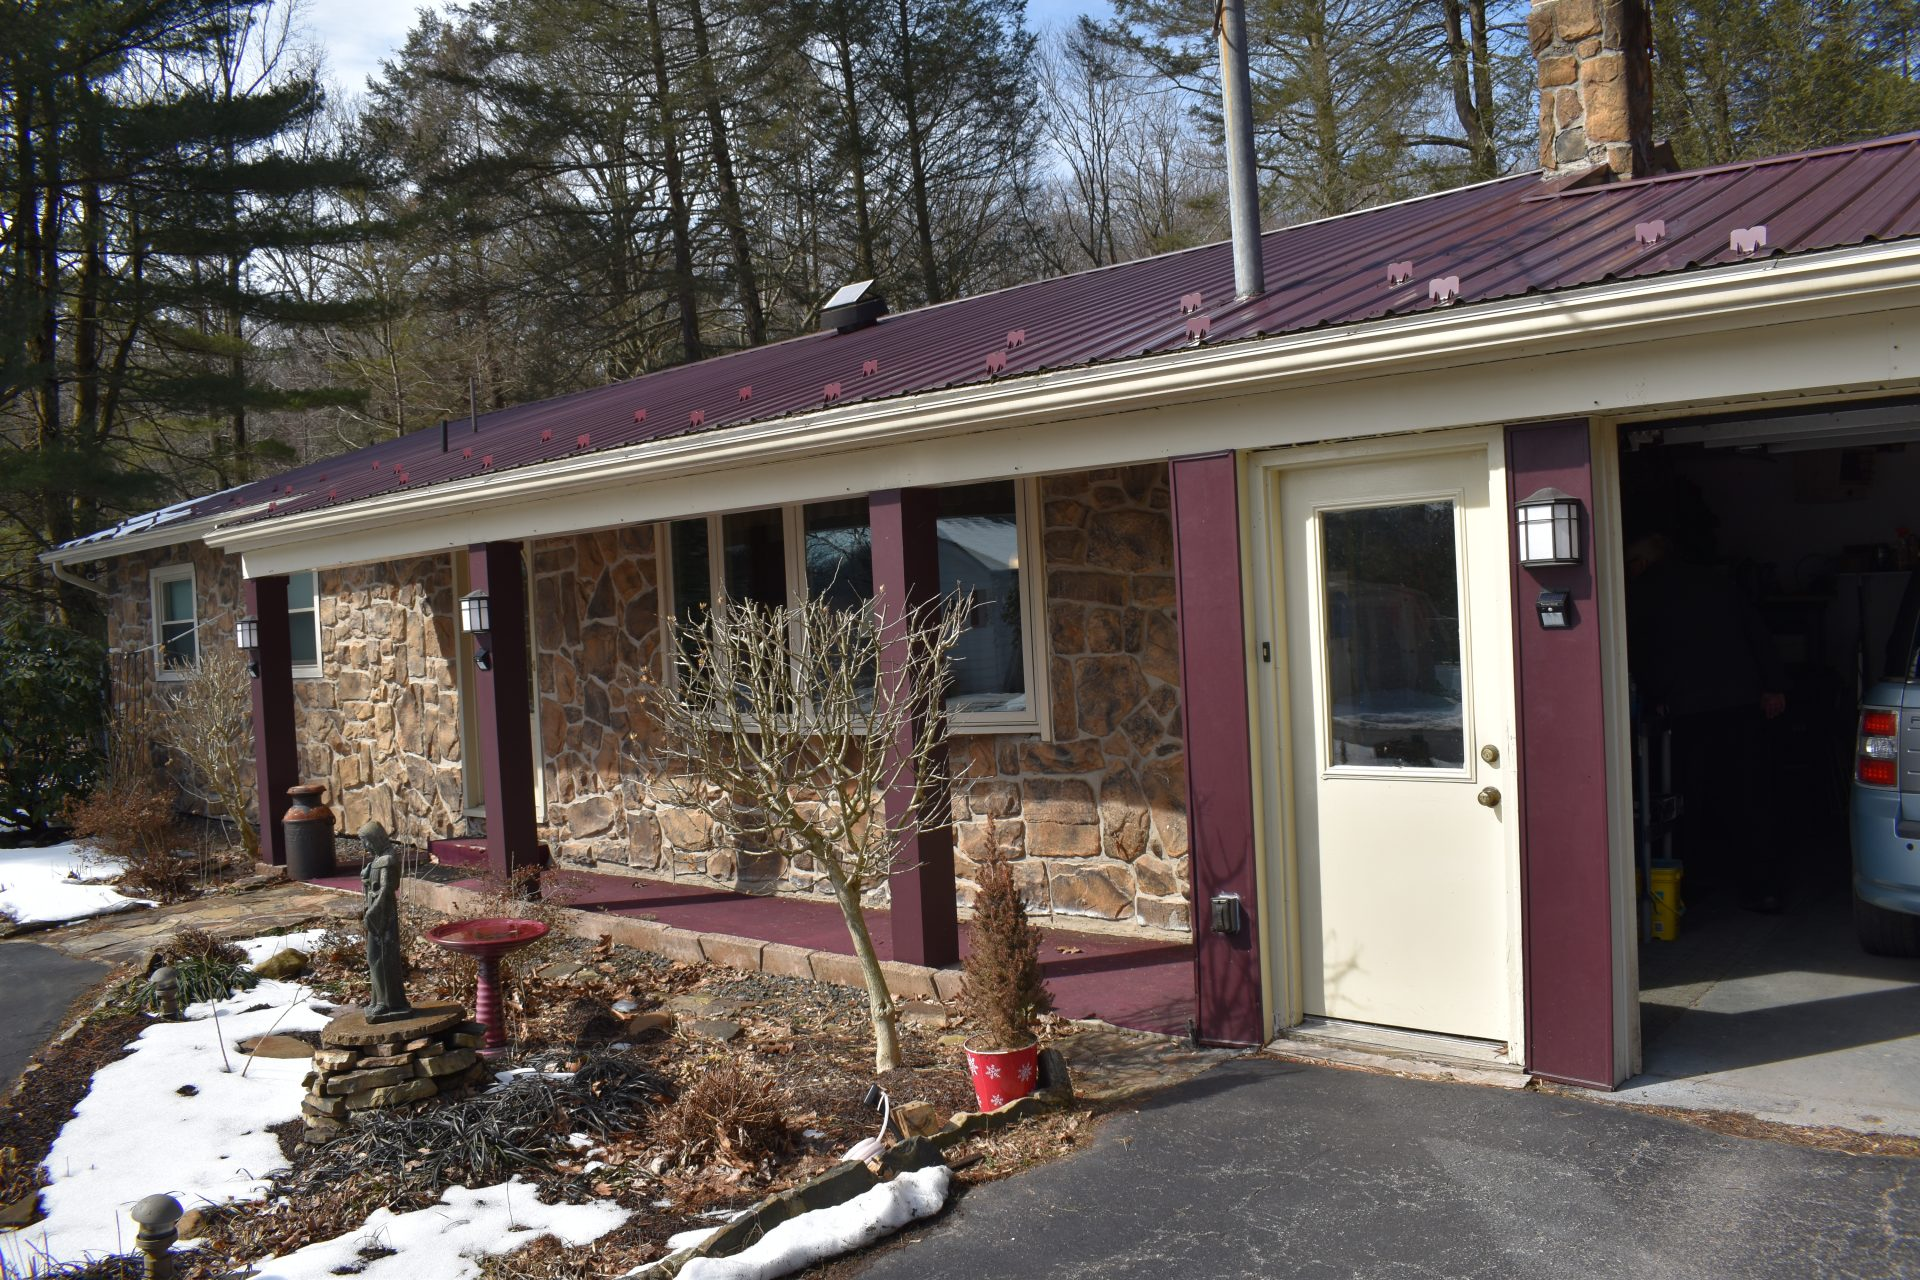 Bob Smith says he pays about $4,000 a year in property taxes on his Schuylkill County home. The home is seen in this photo on March 11, 2019.